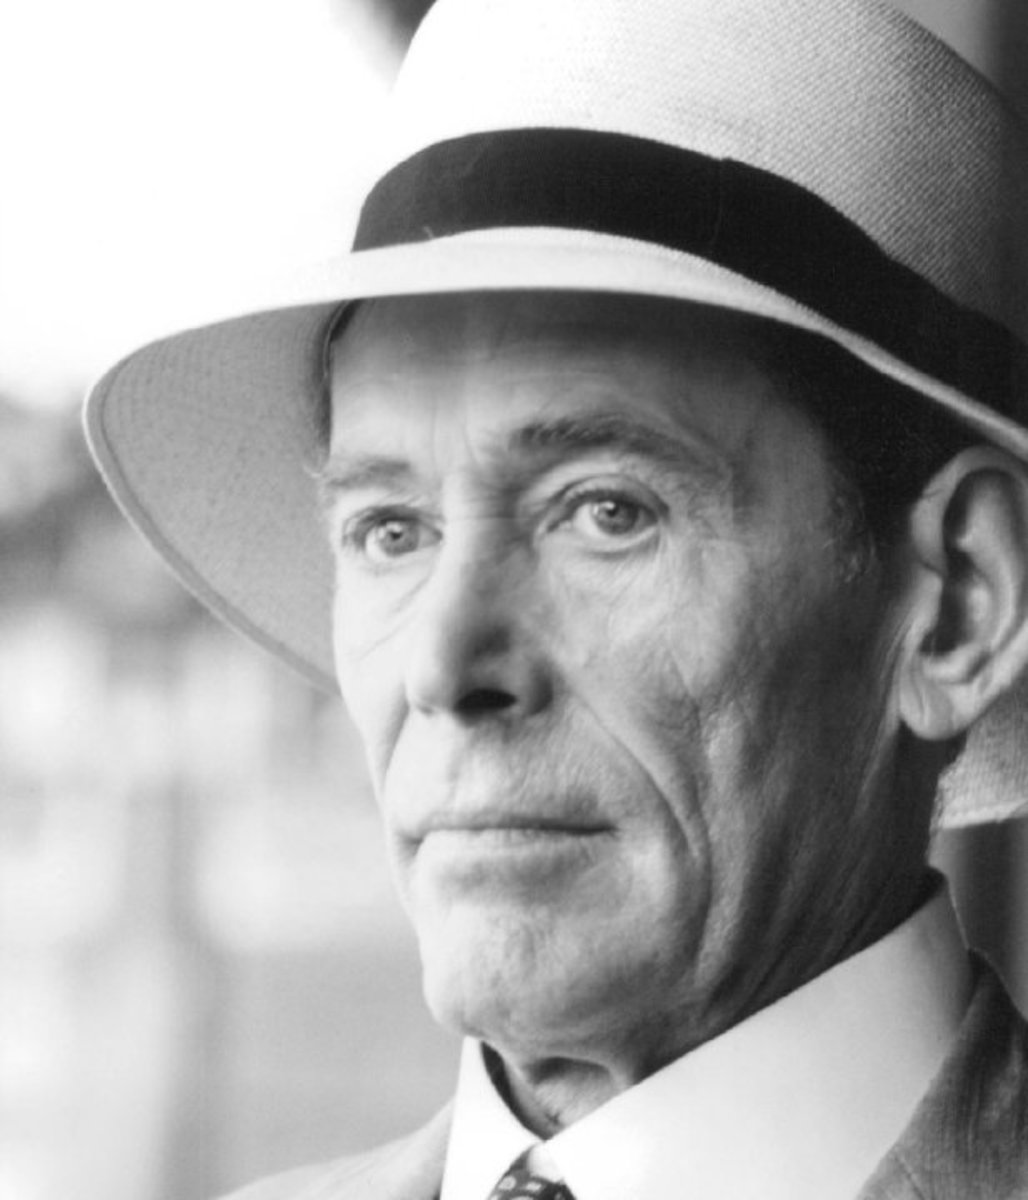 Peter O'Toole in The Last Emperor in 2009